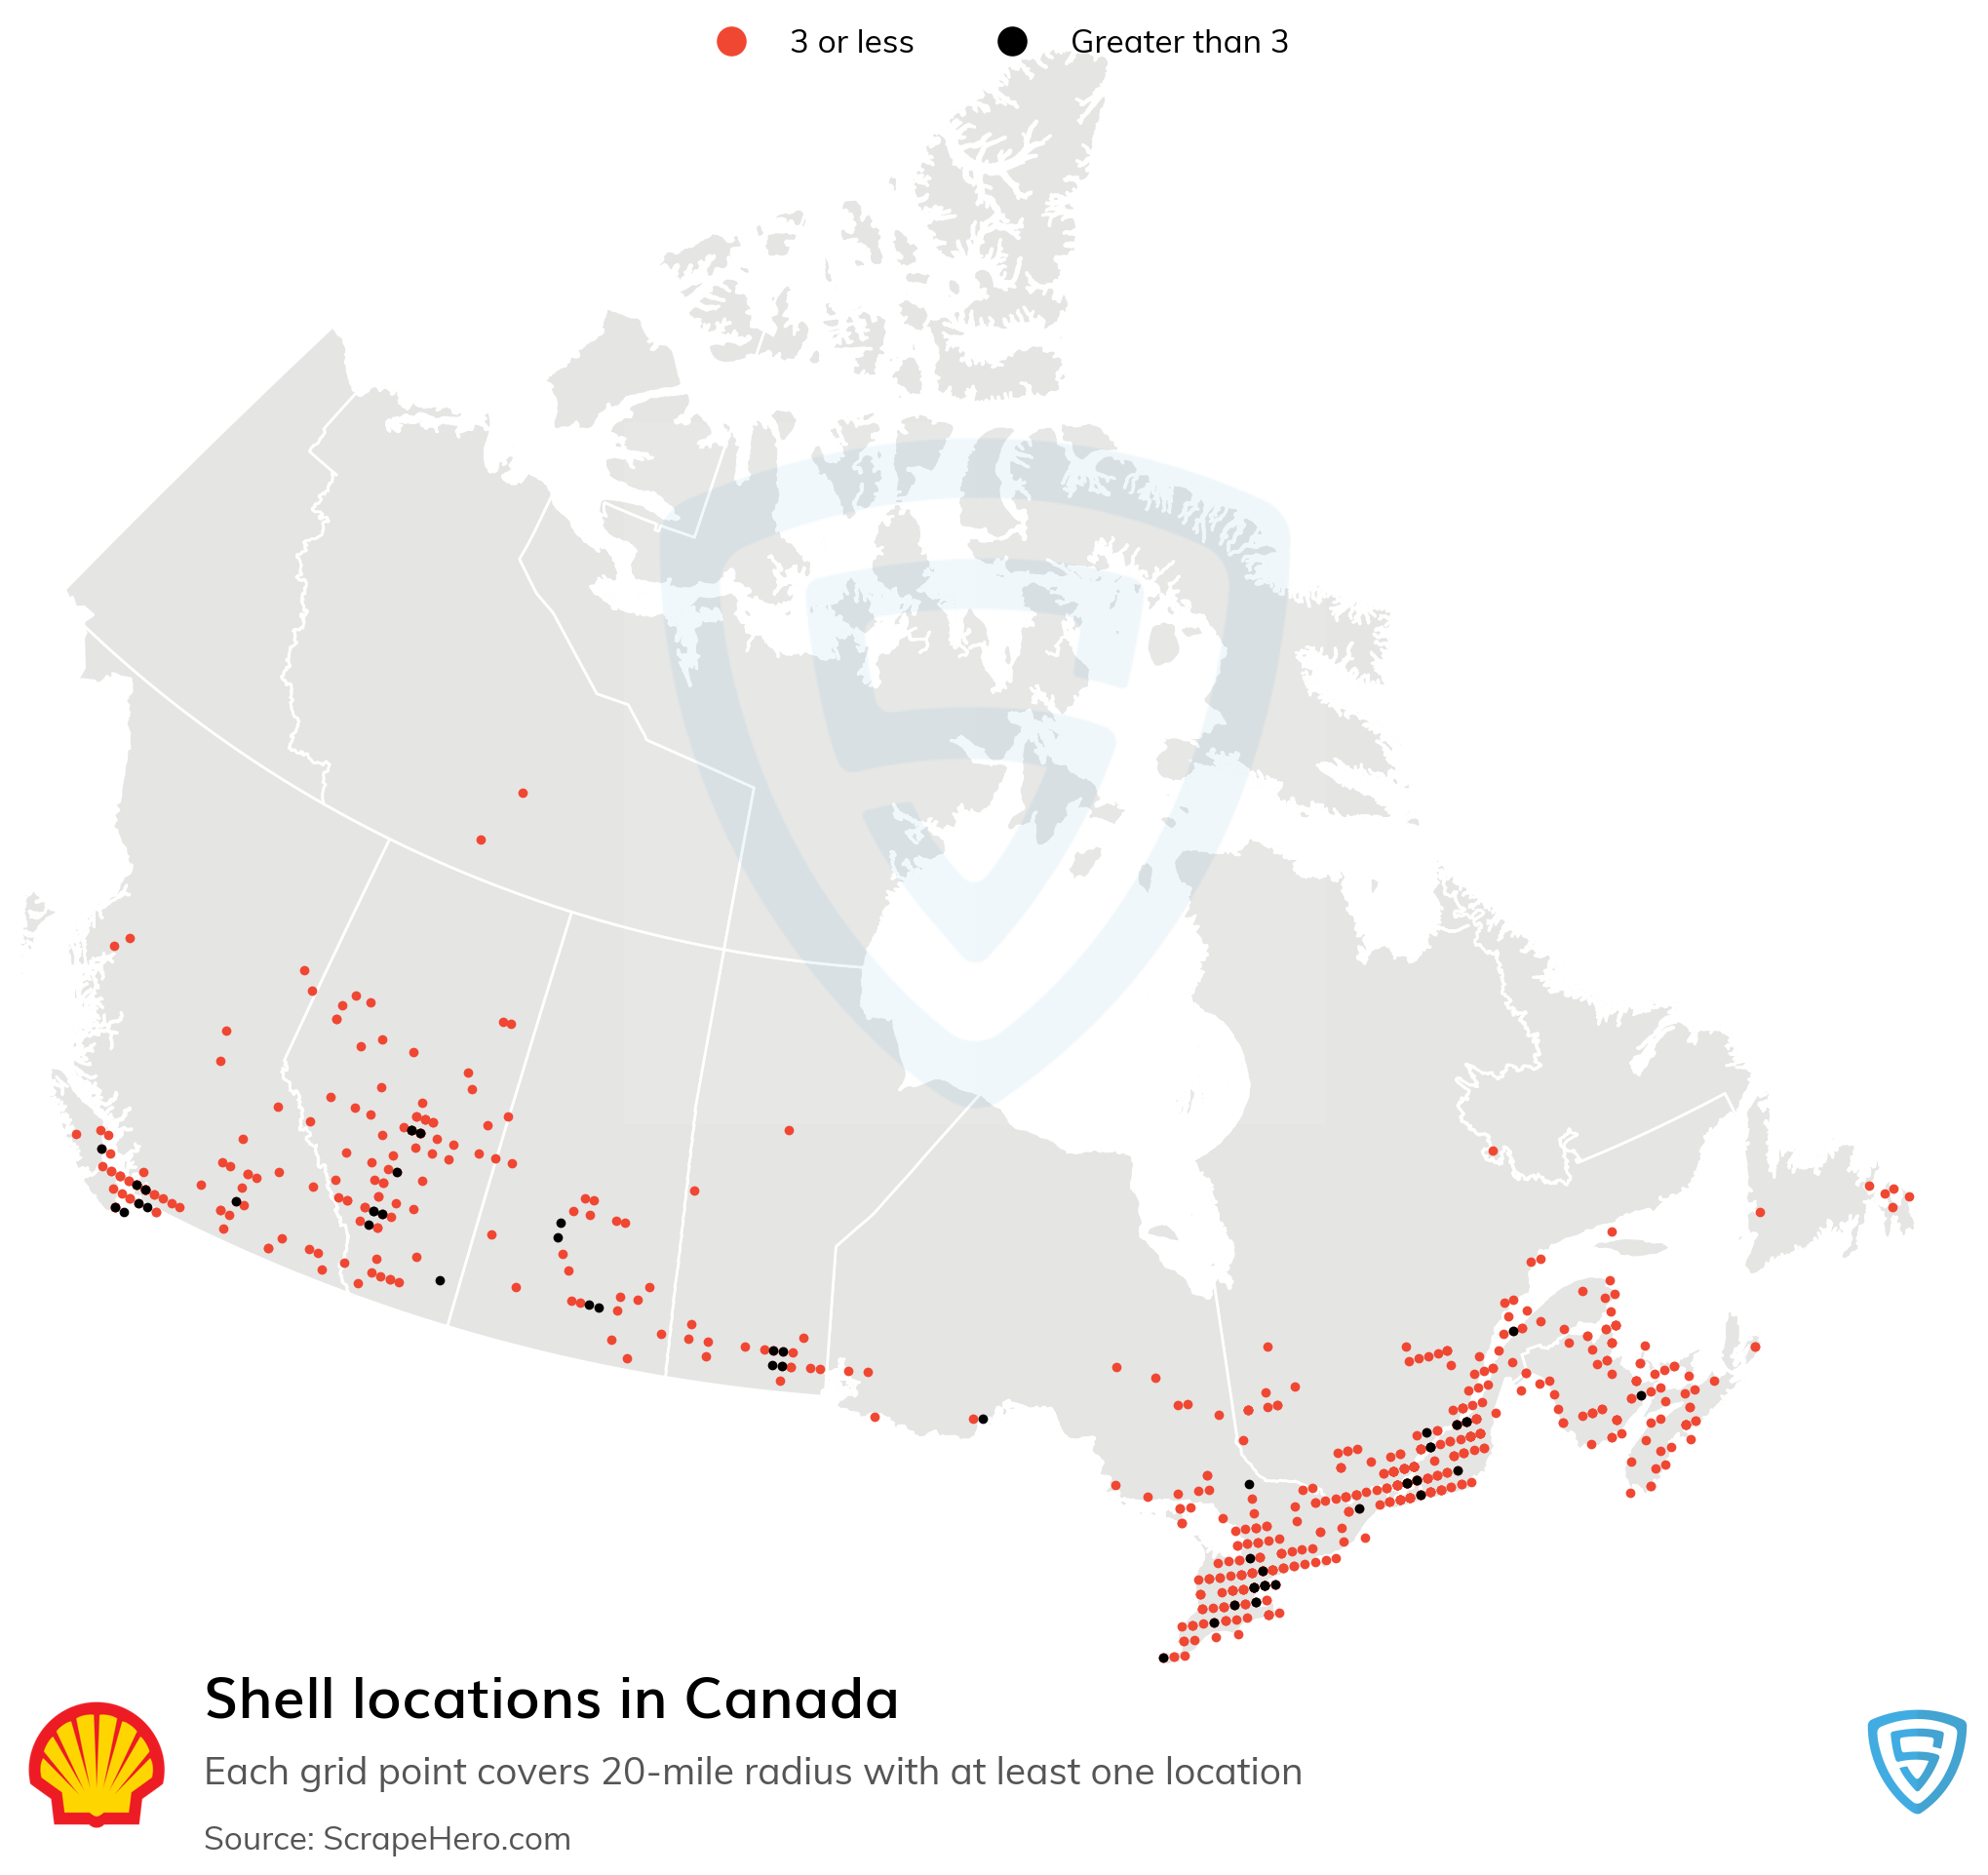 Map of Shell locations in Canada in 2021